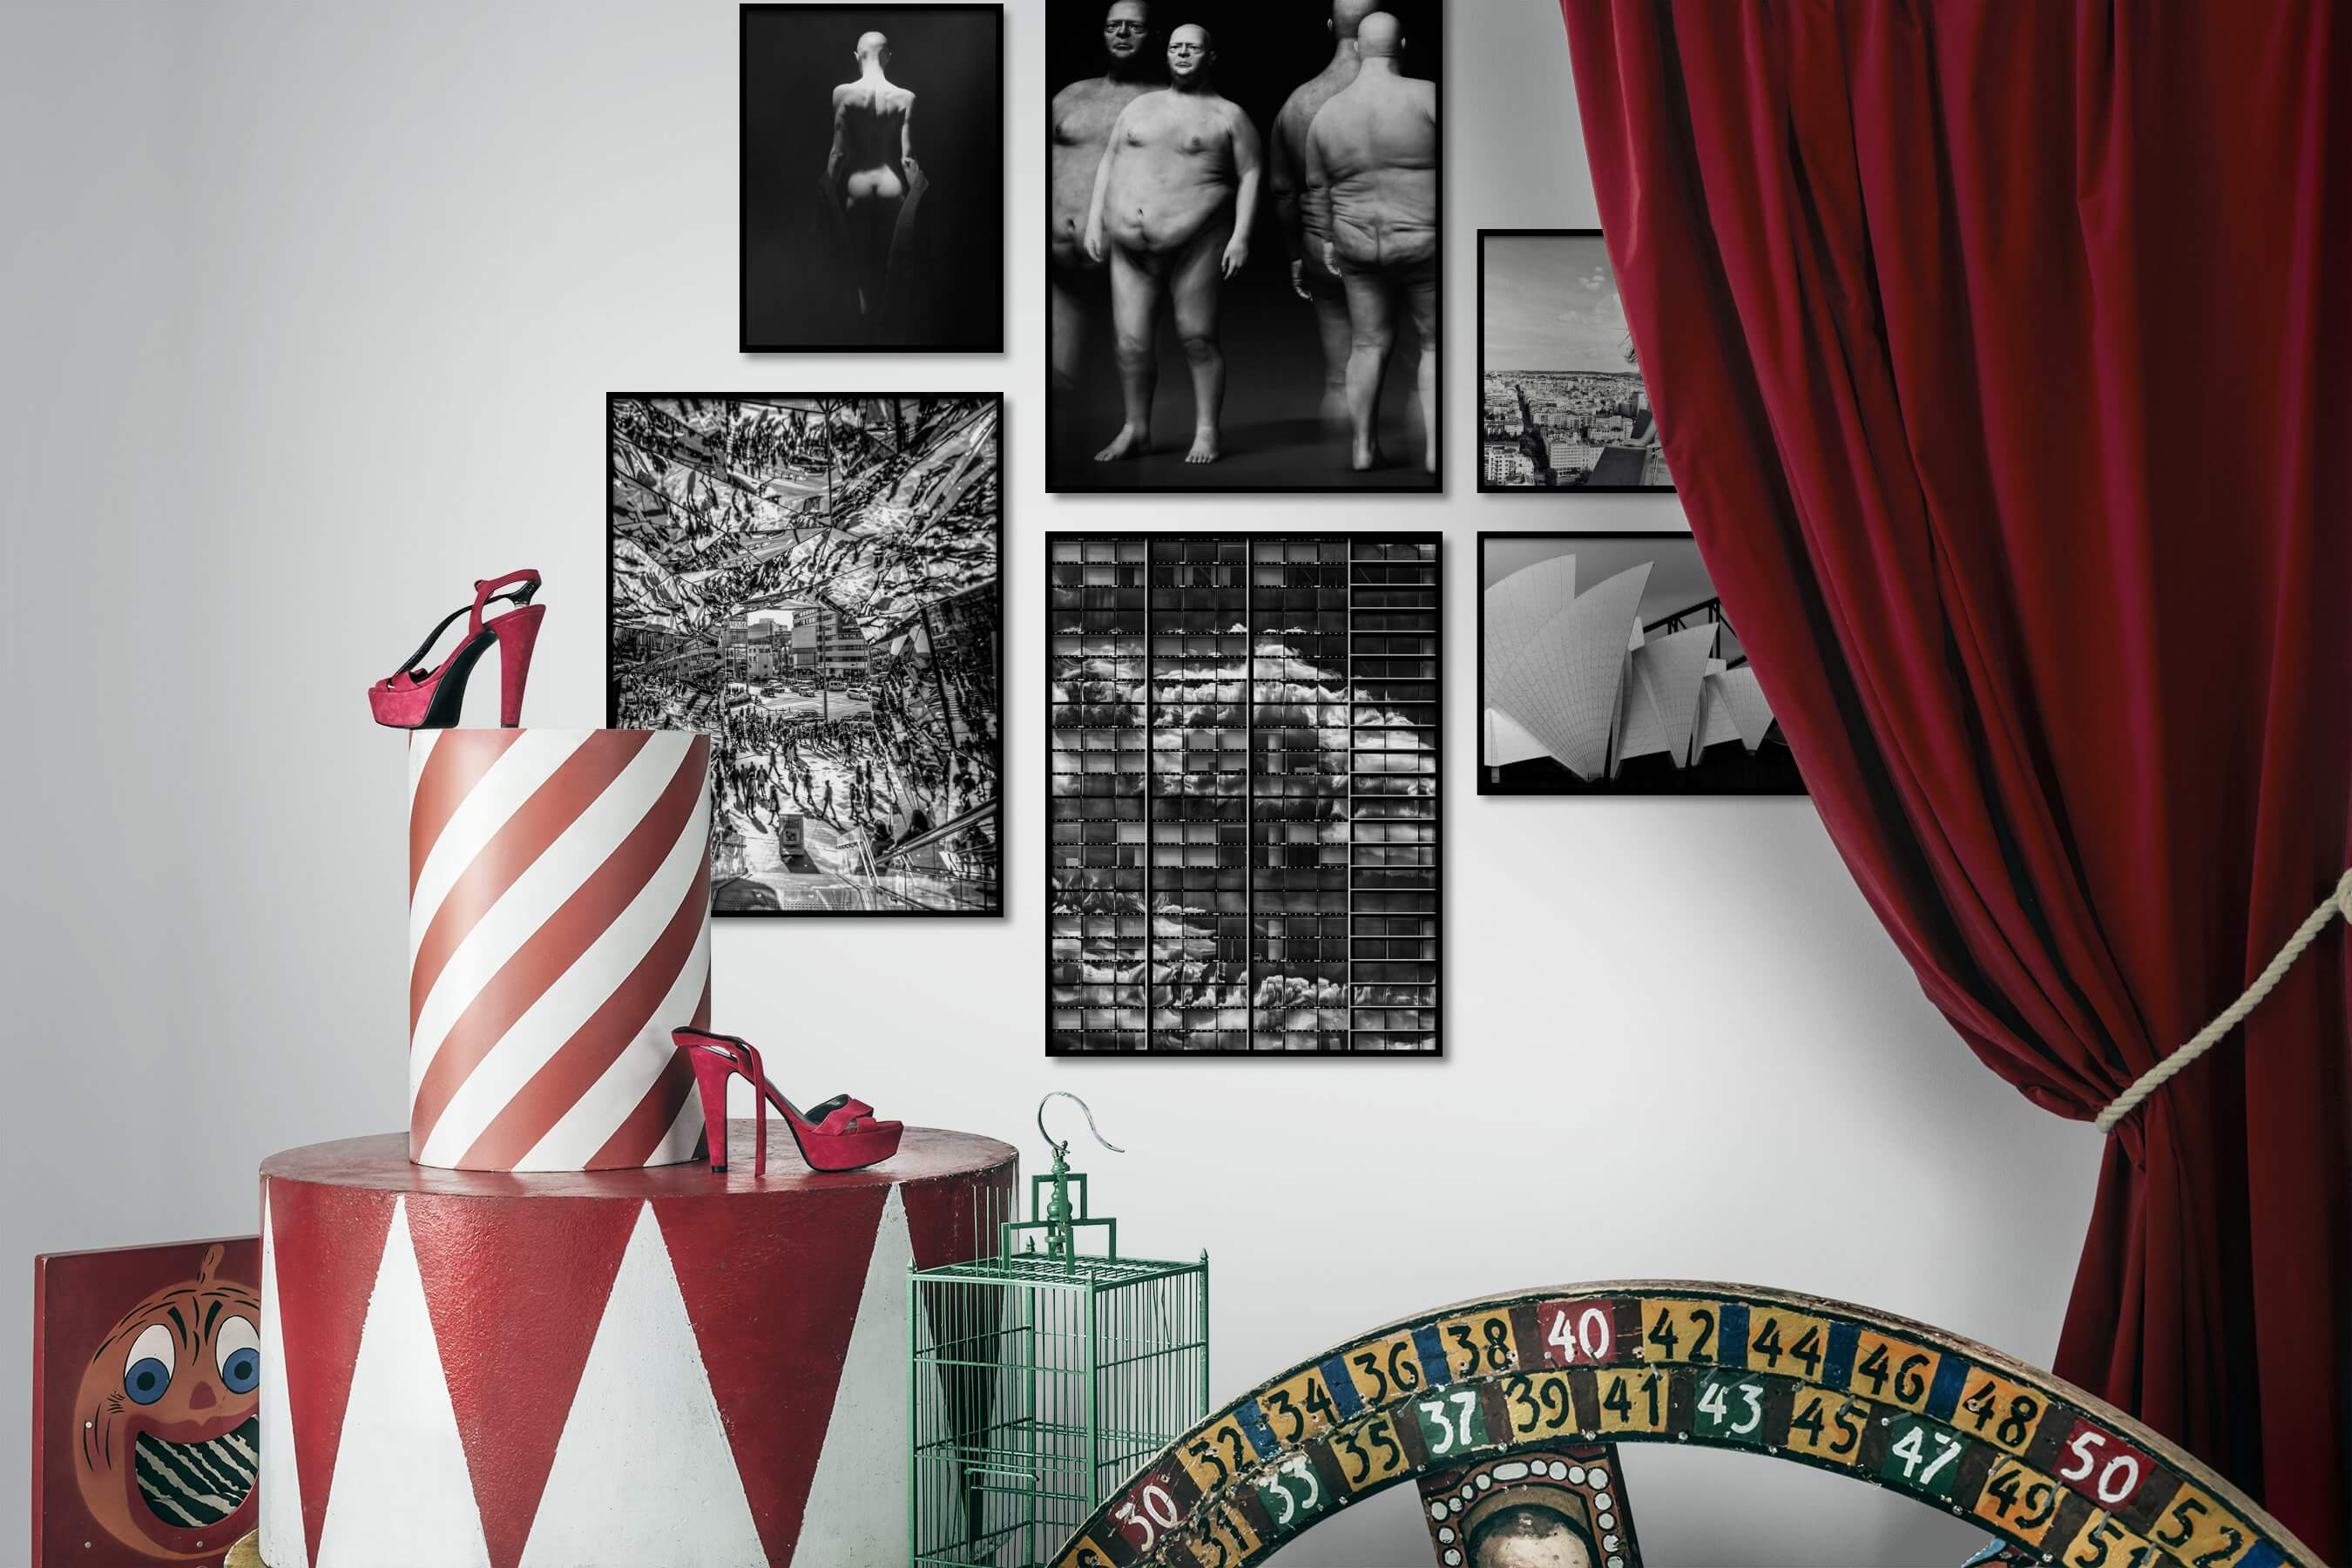 Gallery wall idea with six framed pictures arranged on a wall depicting Fashion & Beauty, Black & White, Dark Tones, For the Minimalist, Artsy, For the Maximalist, City Life, and For the Moderate